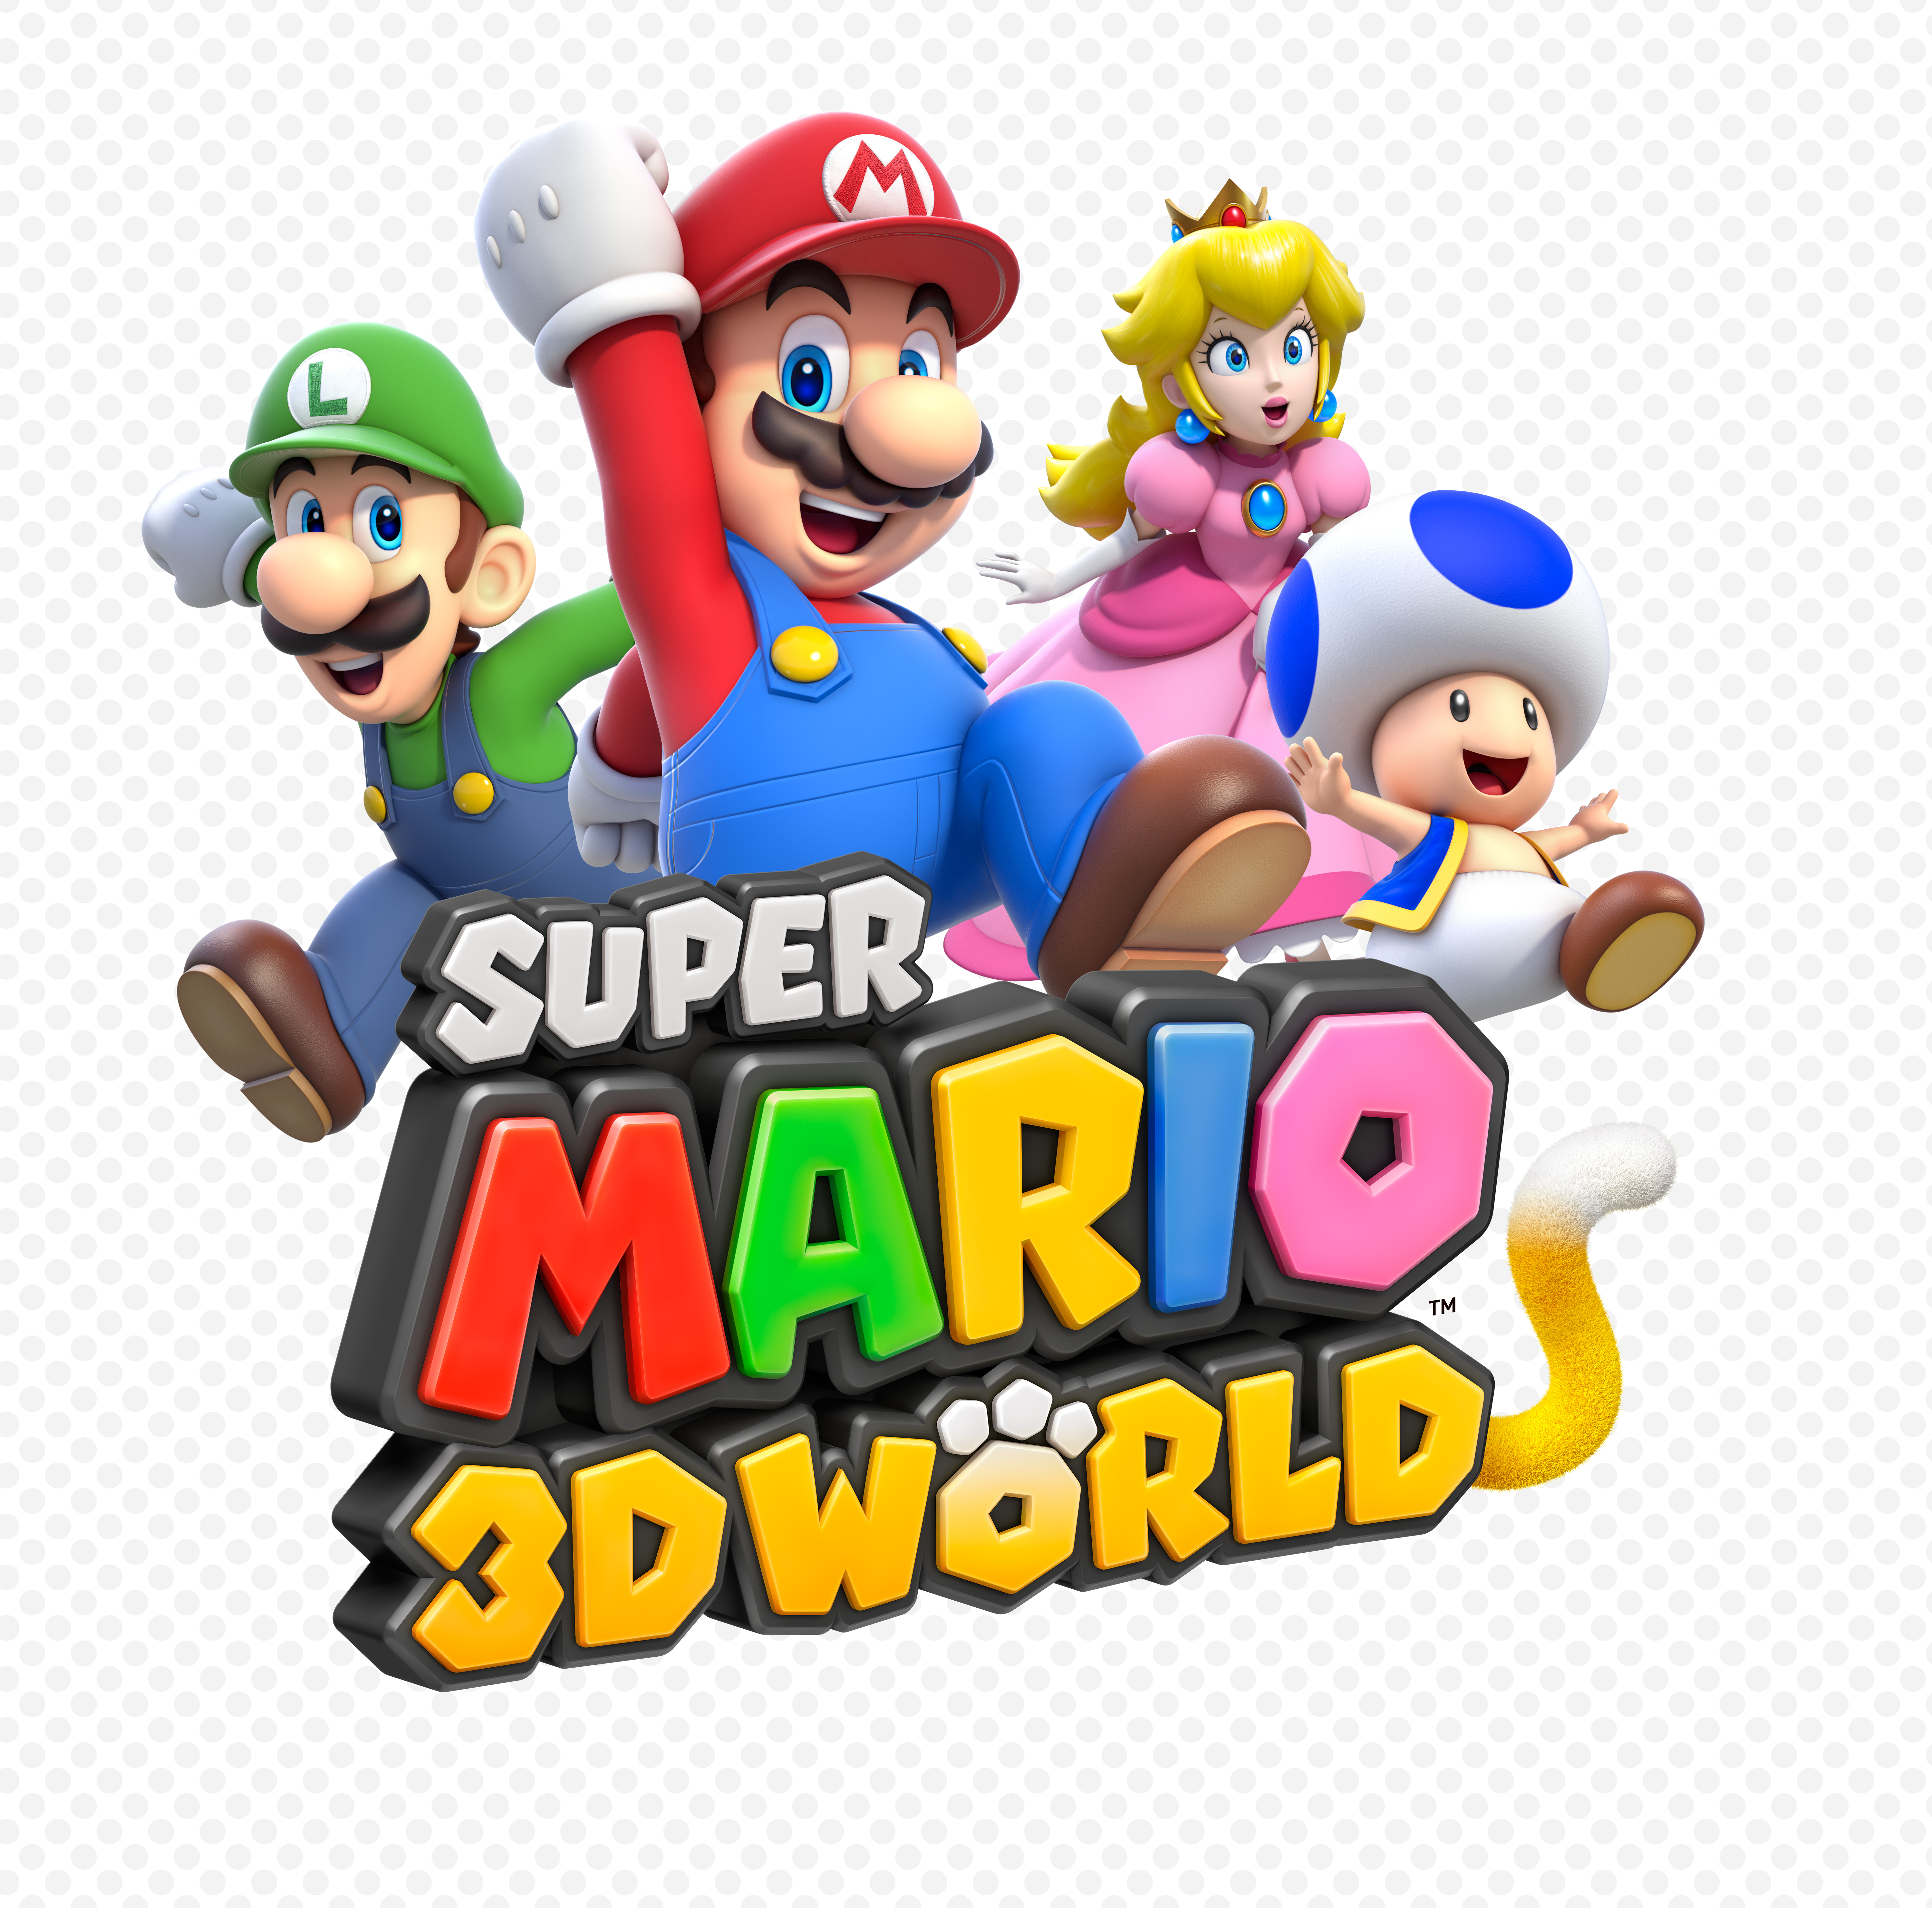 Star World Wii 3d Mario U House Super Ghost World